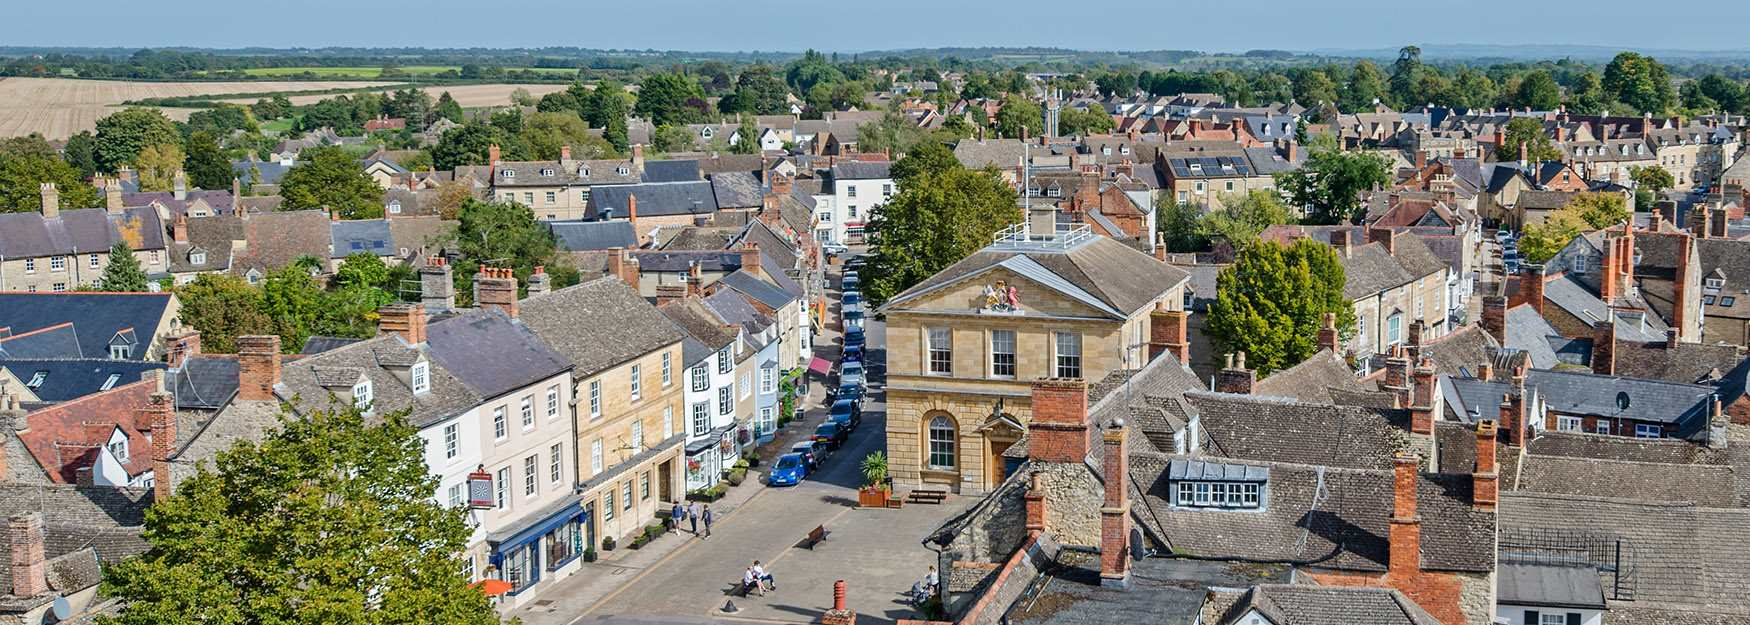 Looking down on Woodstock from the church tower (photo by Jay Alice Photographic)